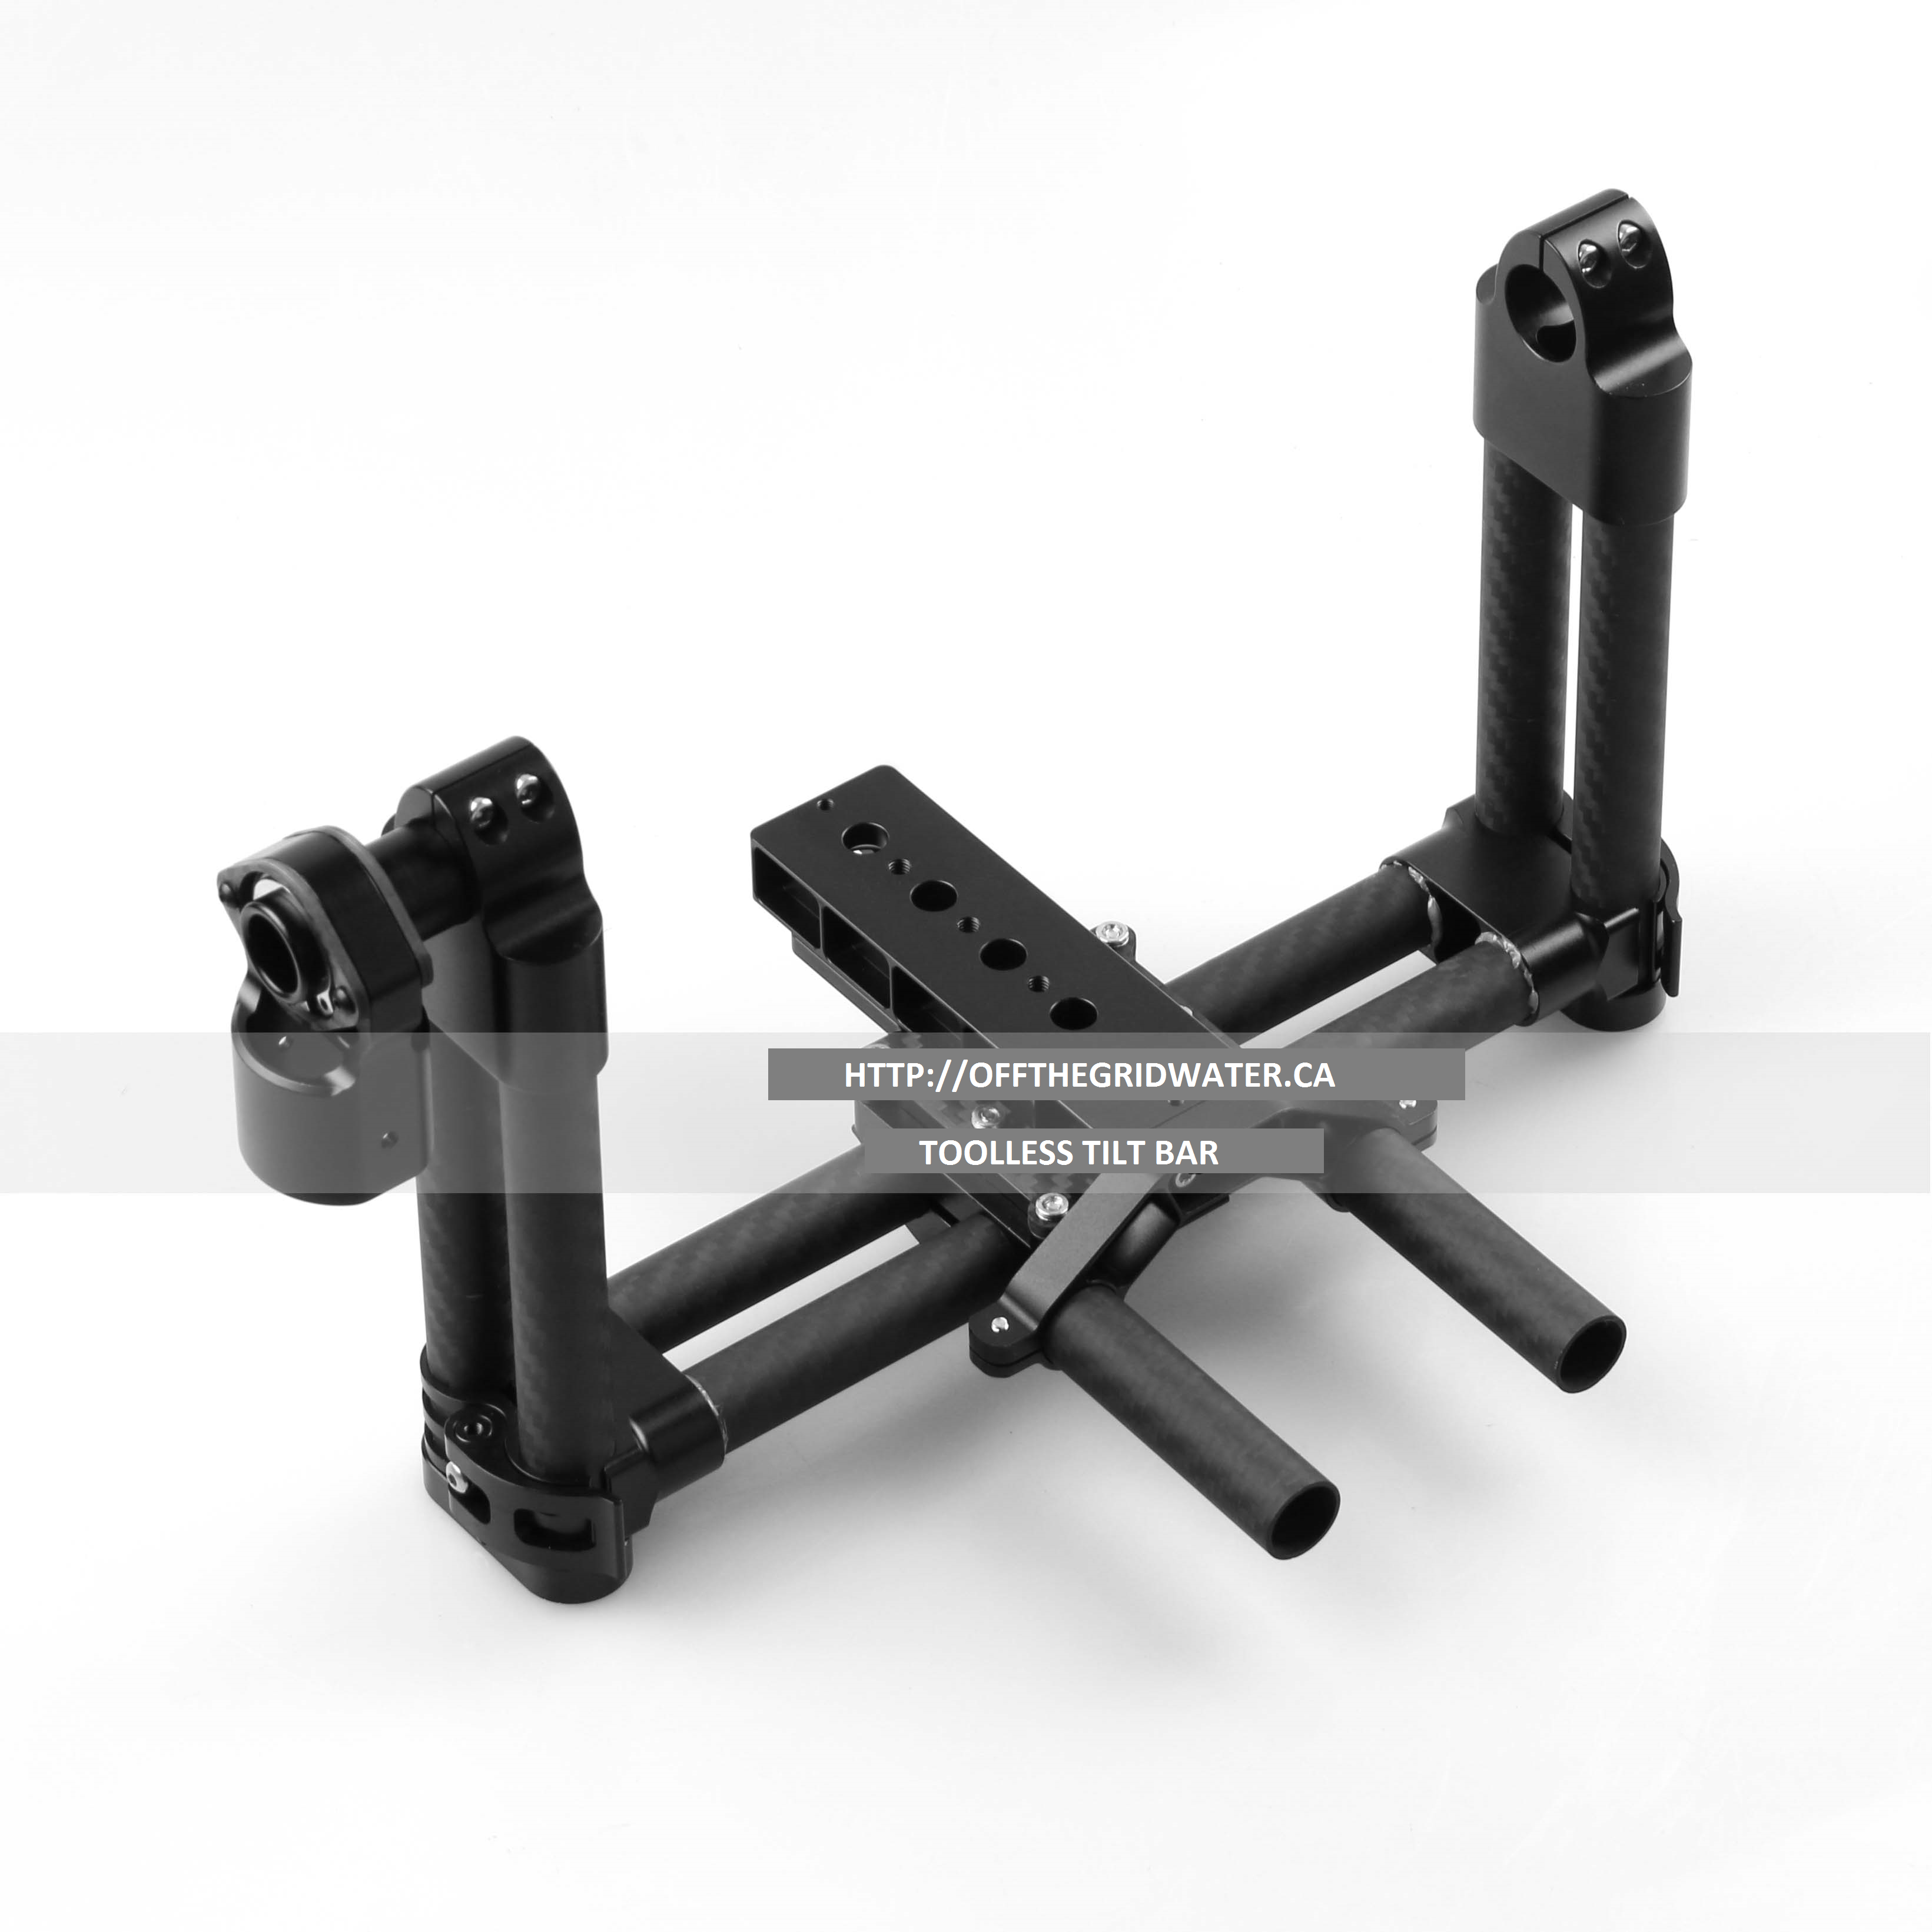 Pitch tilt bar system for BG004 pro gimbal